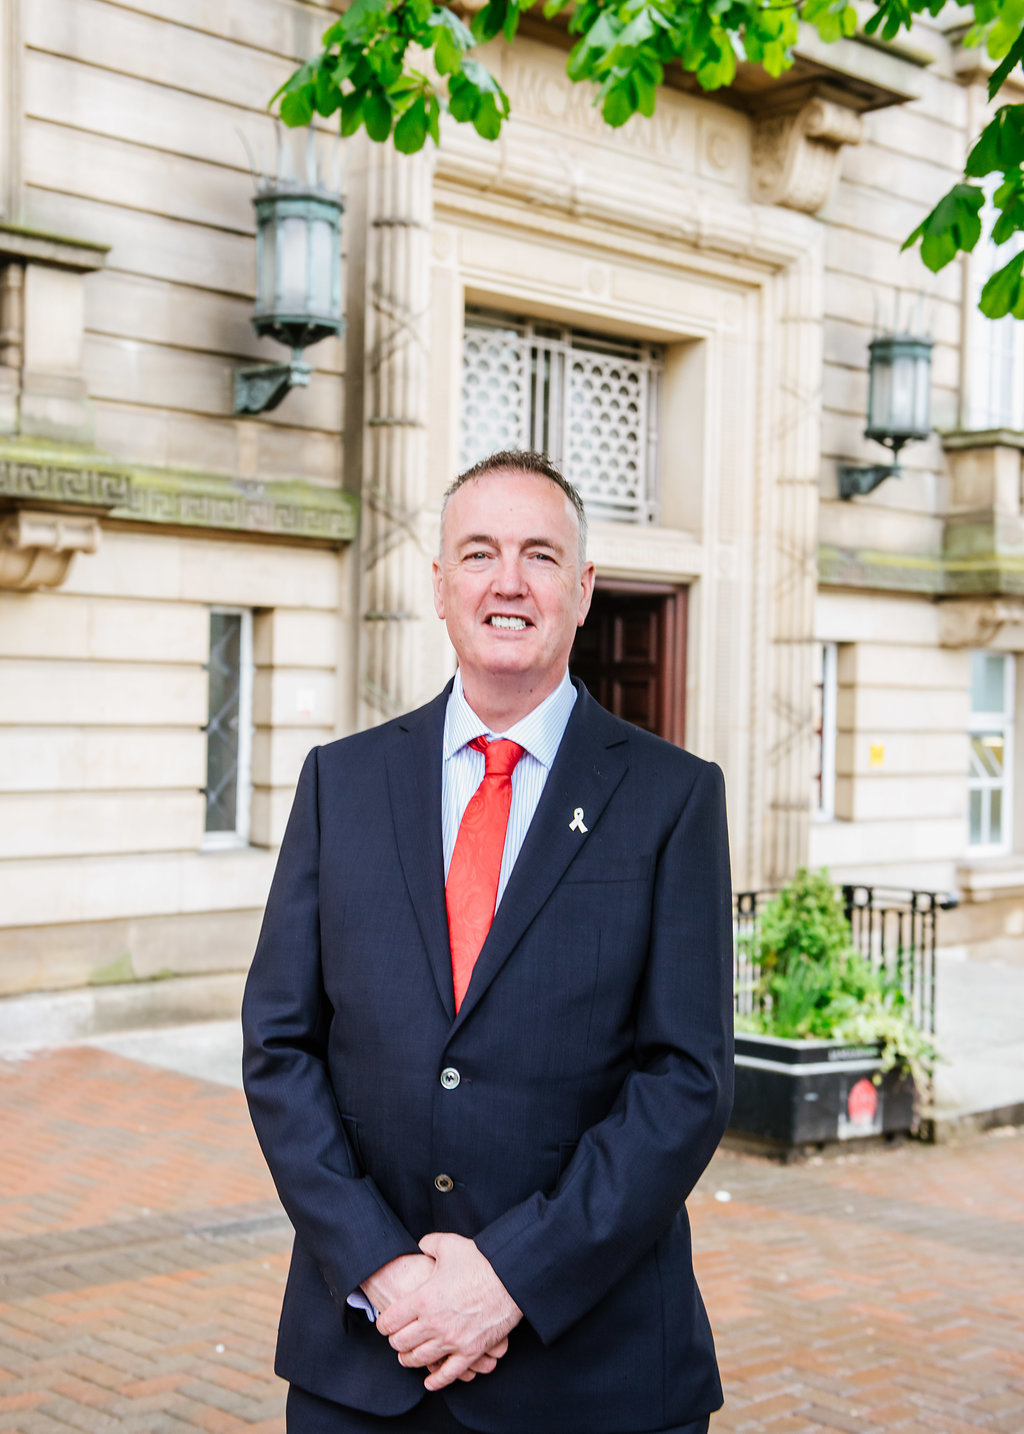 Police and crime commissioner Clive Grunshaw